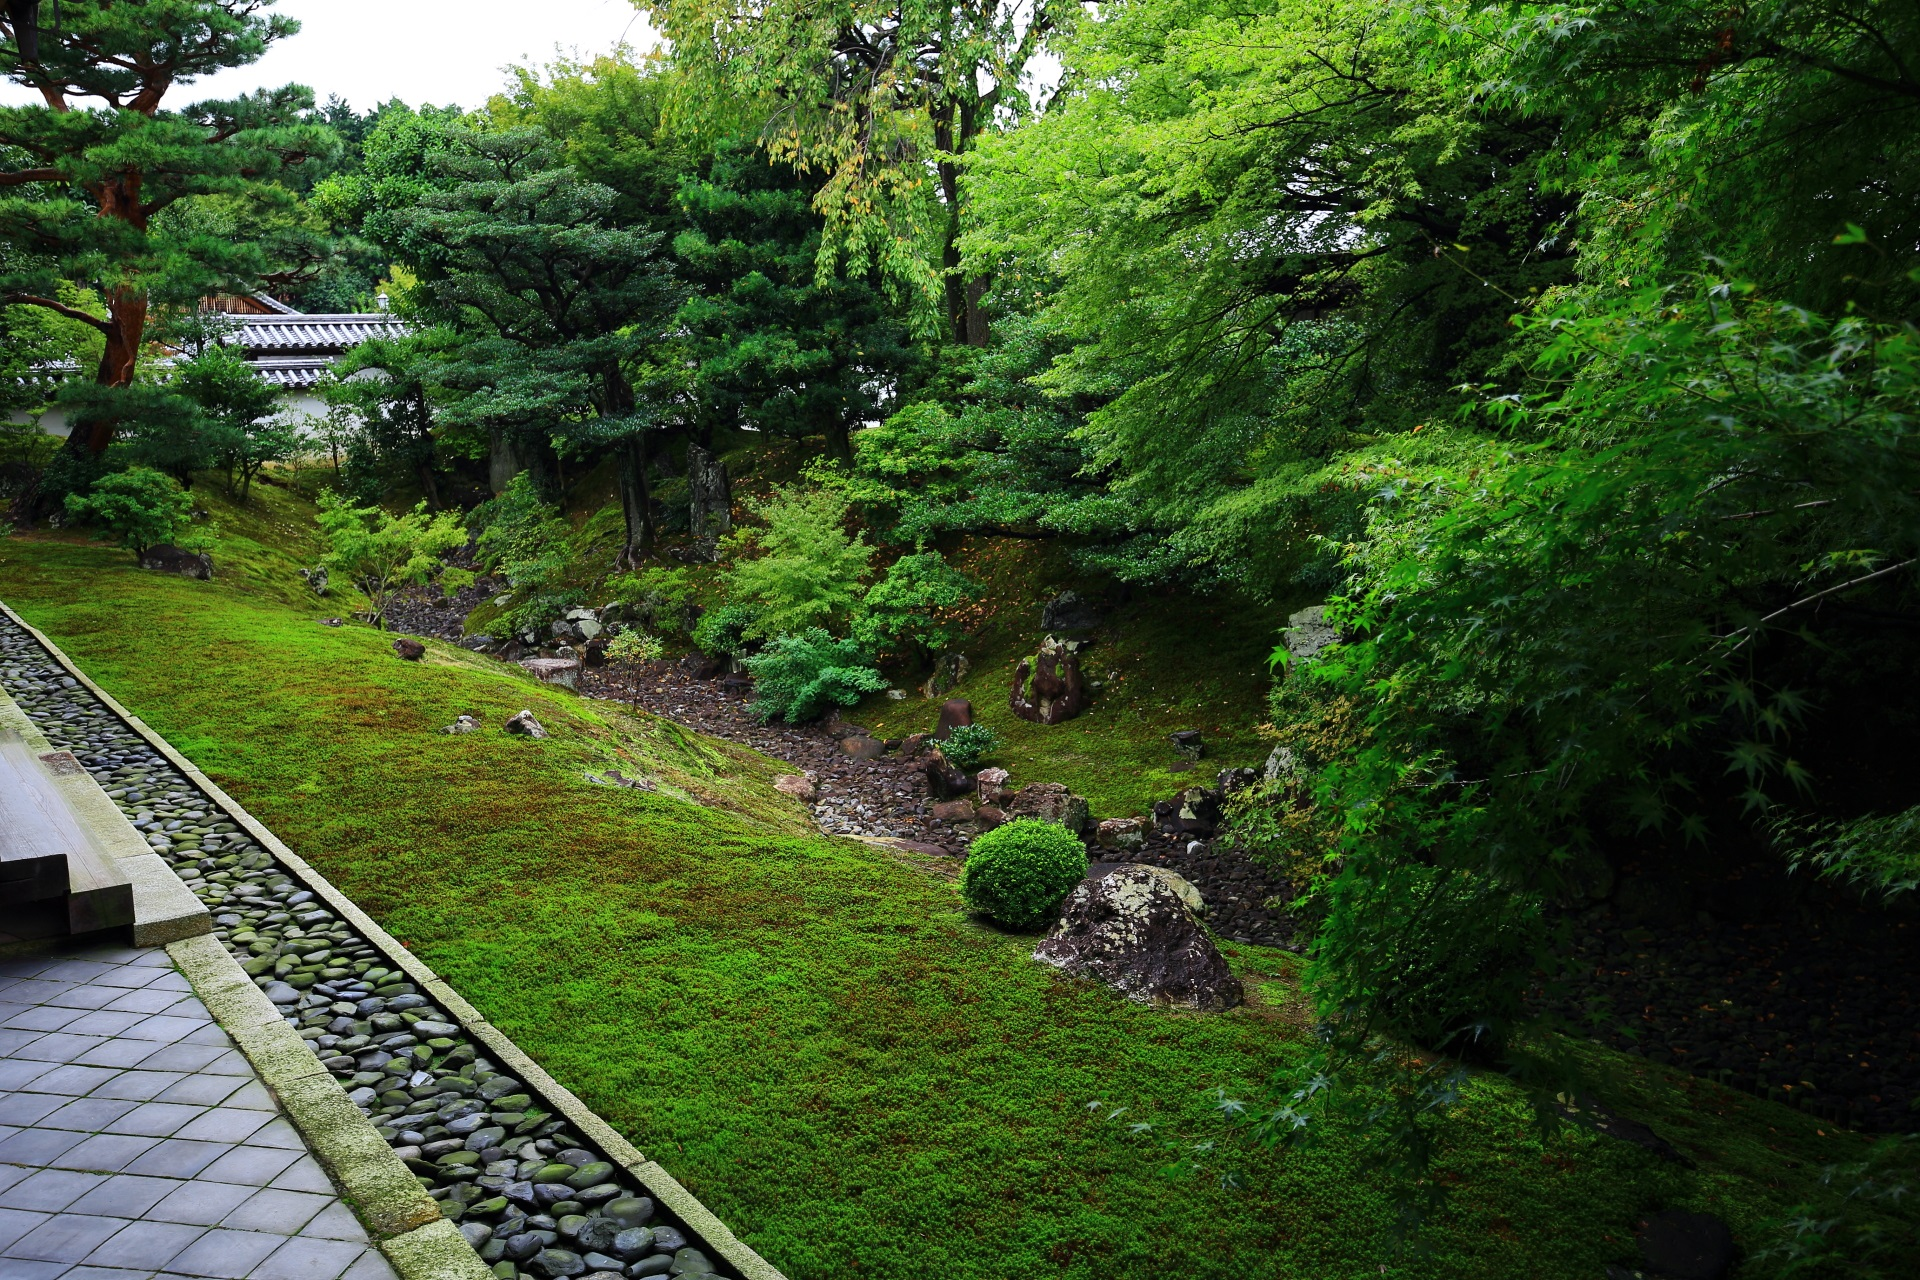 A unique and beautiful garden in Shokokuji-Temple in Kyoto